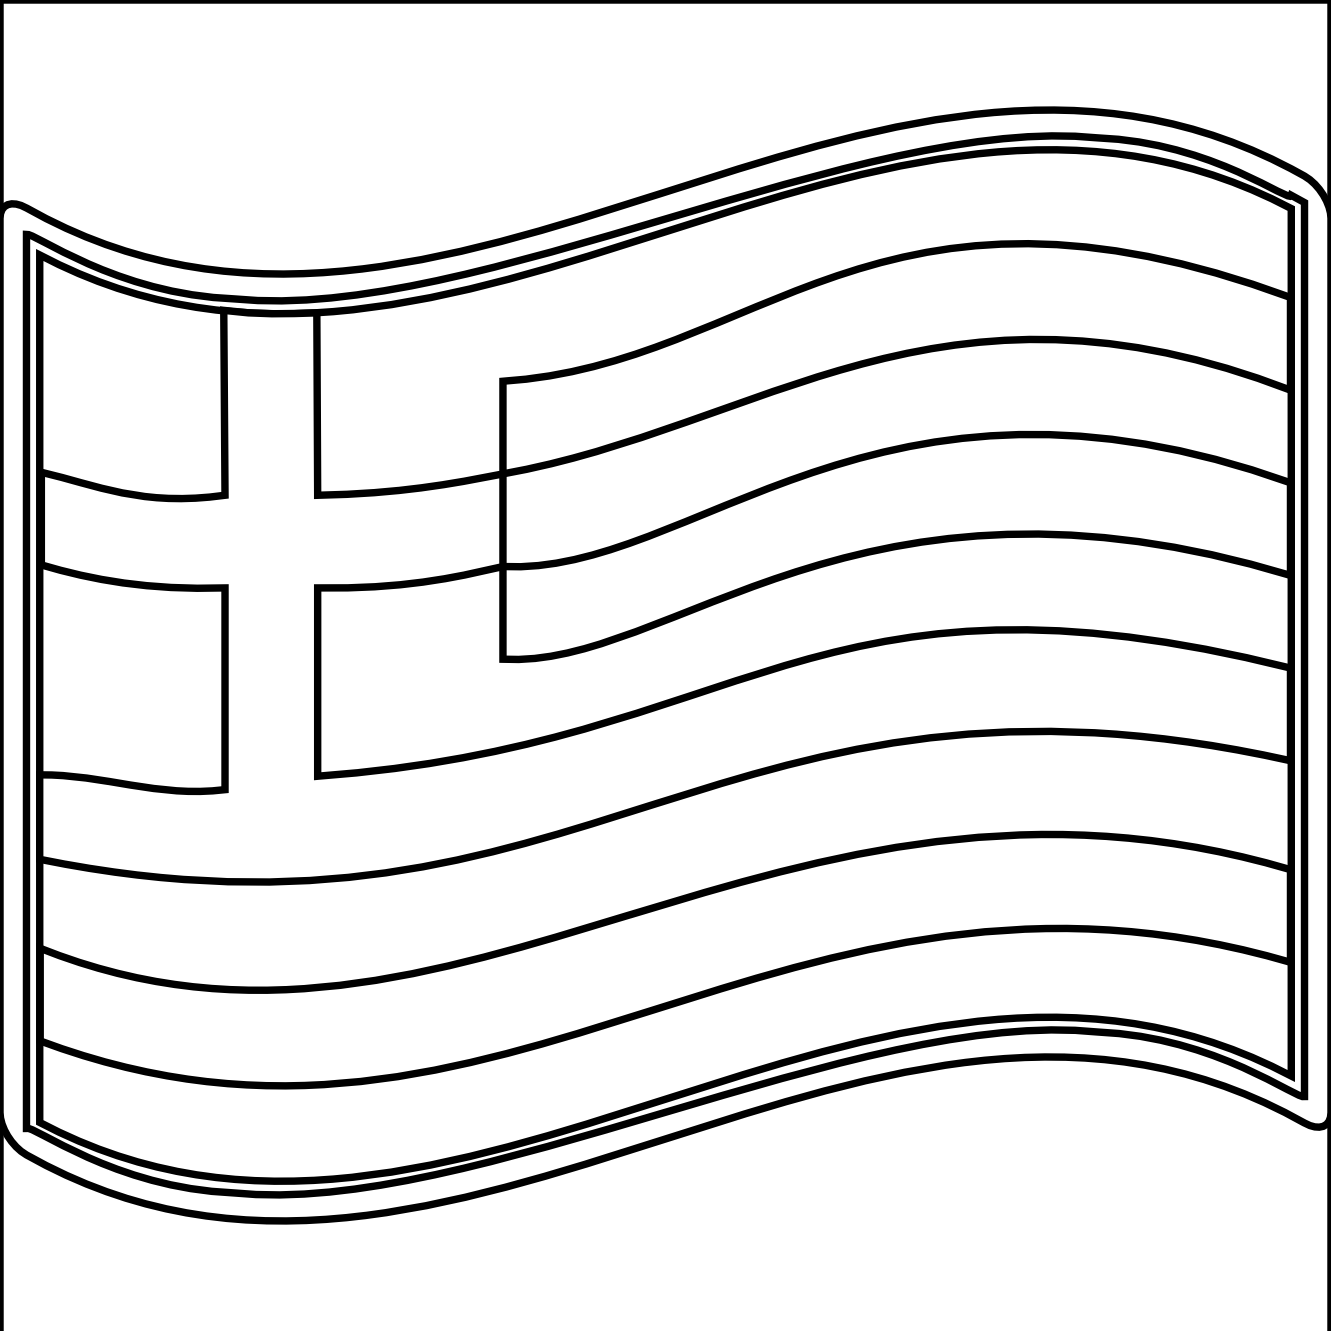 greek flag coloring page greece flag coloring page coloring pages coloring greek flag page